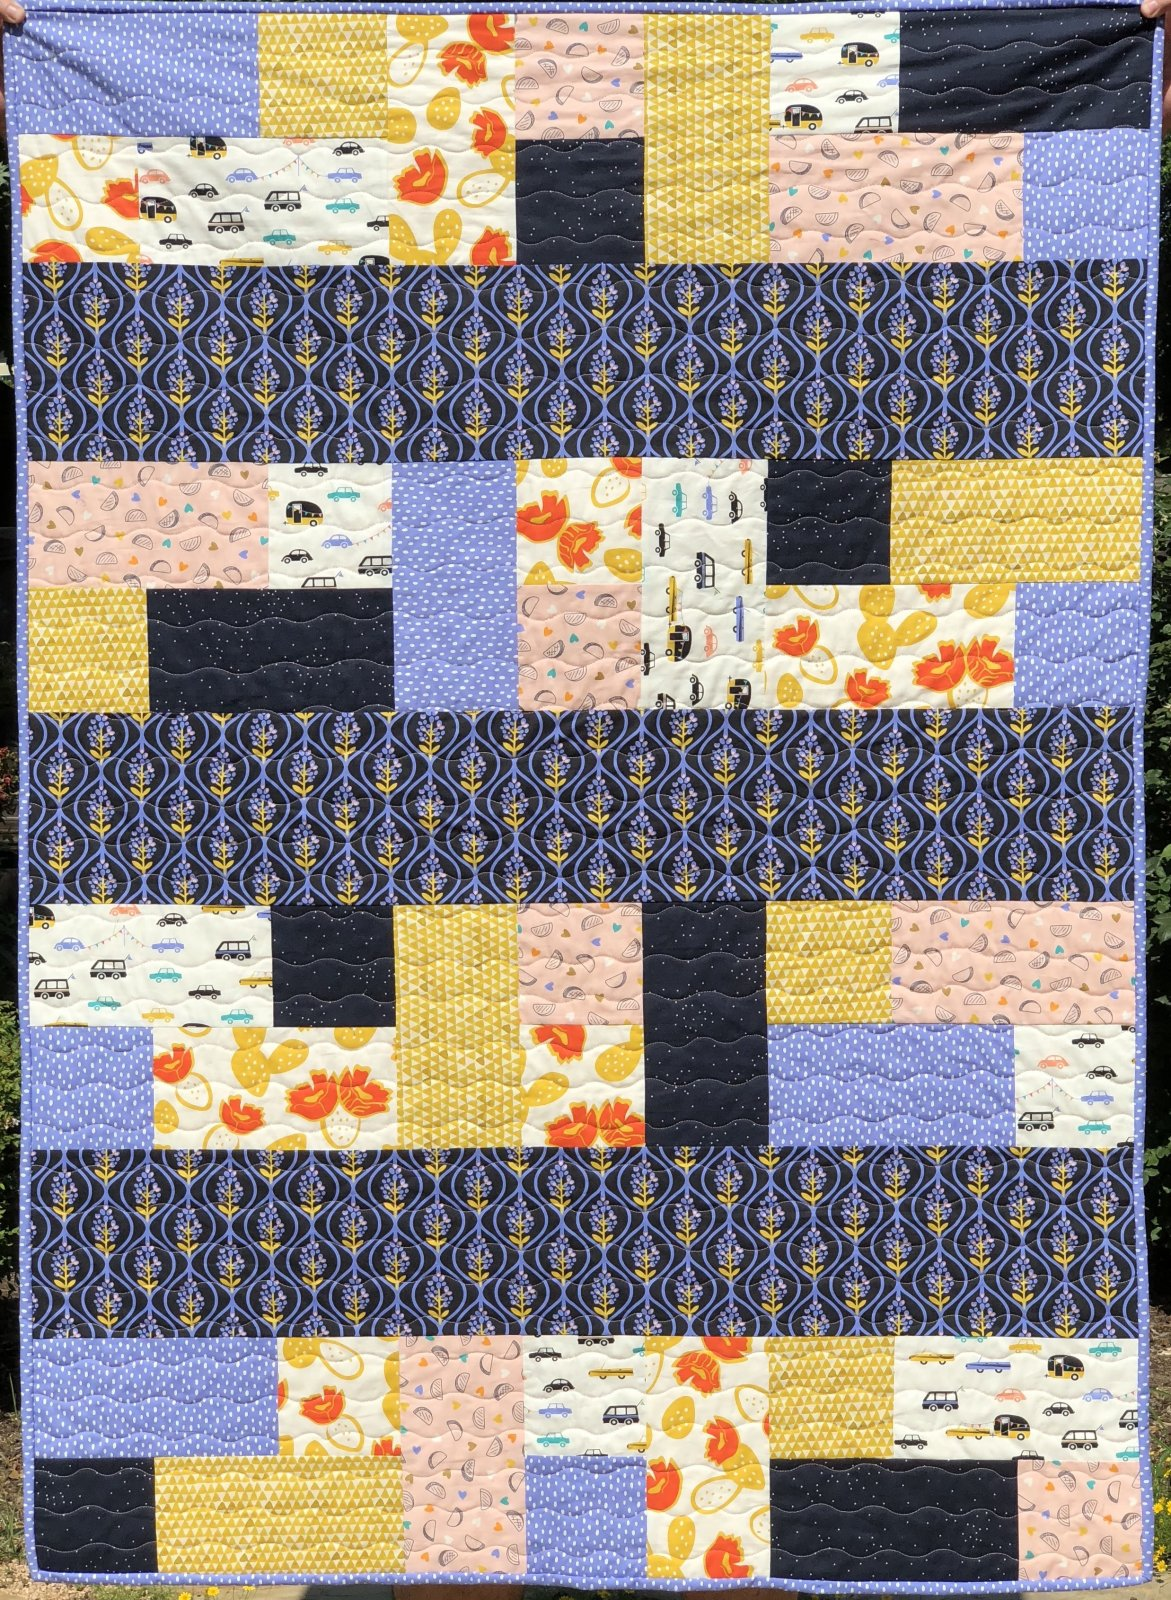 Bluebonnets Quilt Kit (includes Binding; excludes Backing)